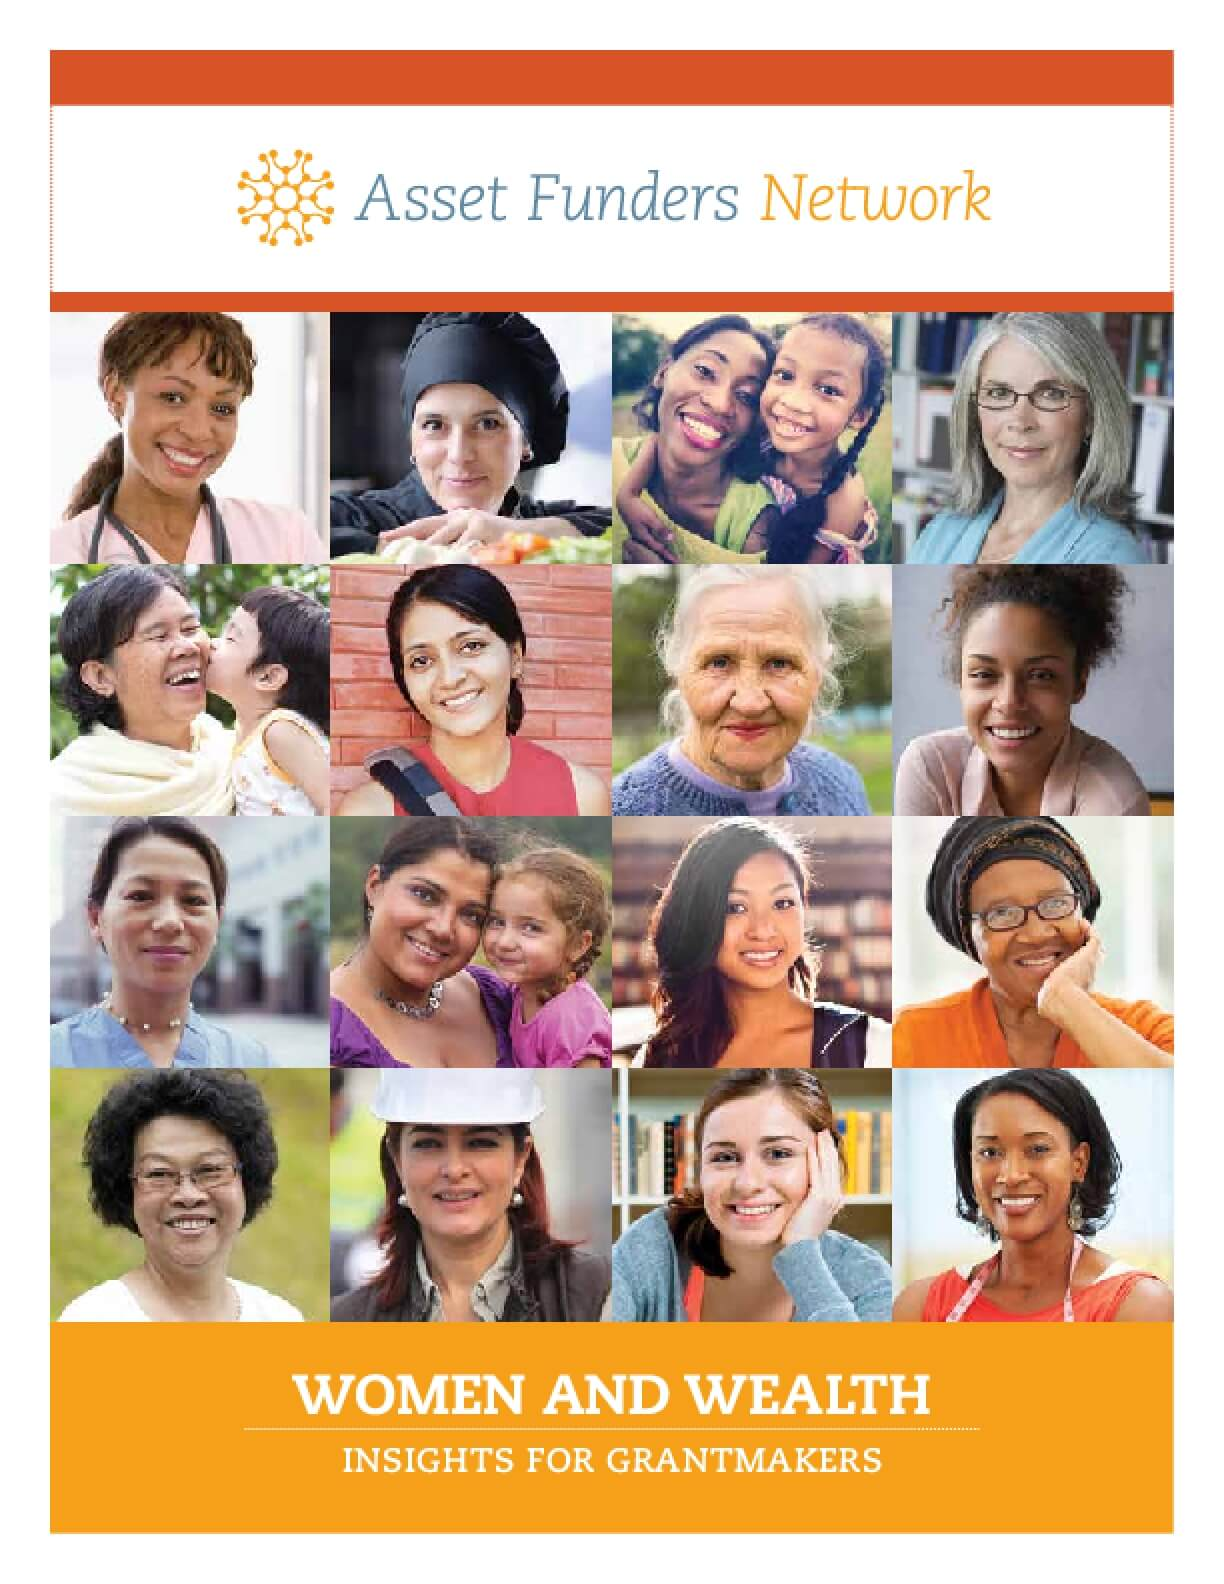 Women and Wealth: Insights for Grantmakers